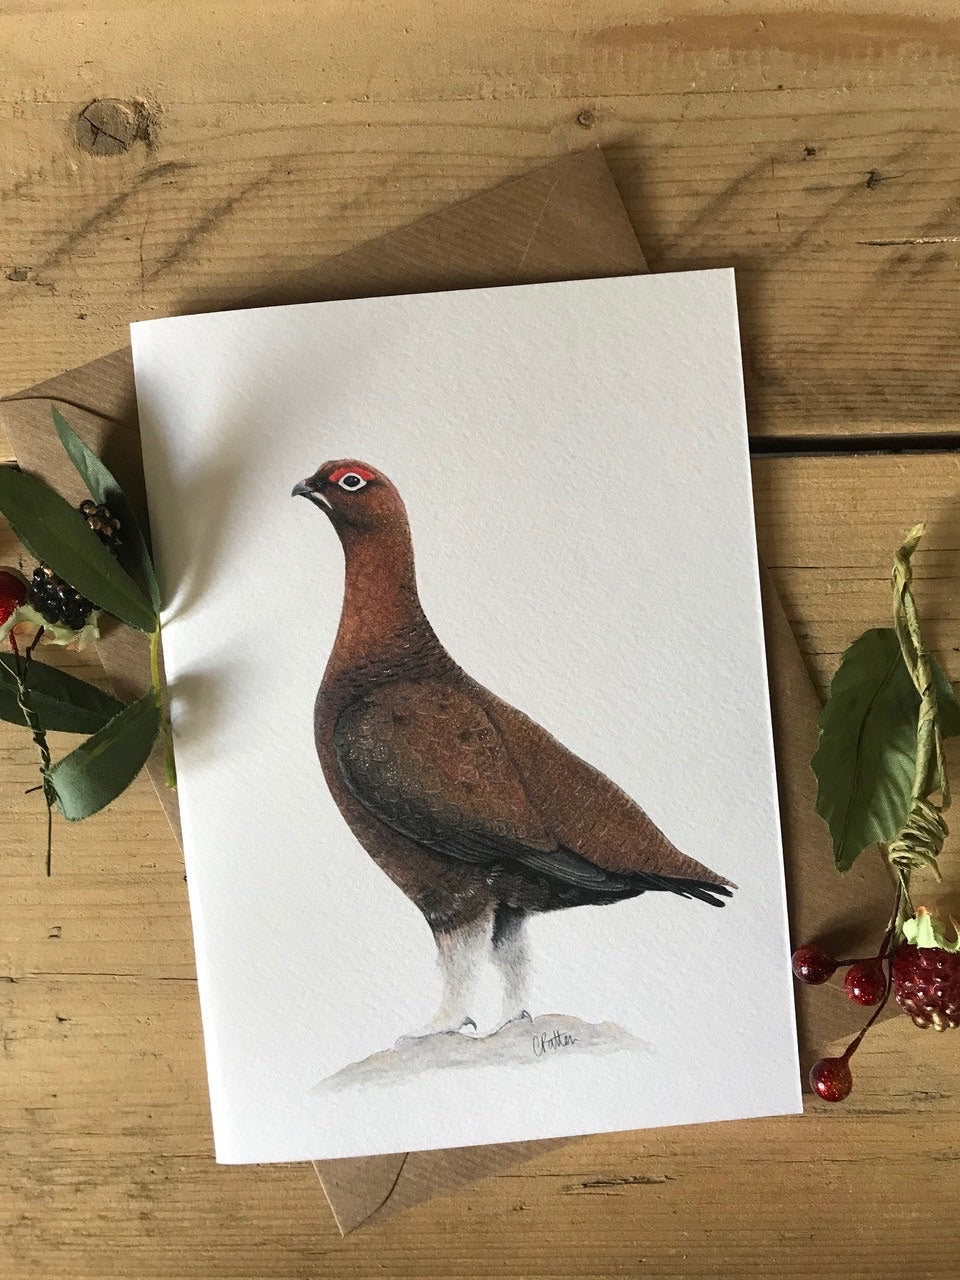 Charlotte Patten - A6 Red Grouse Card